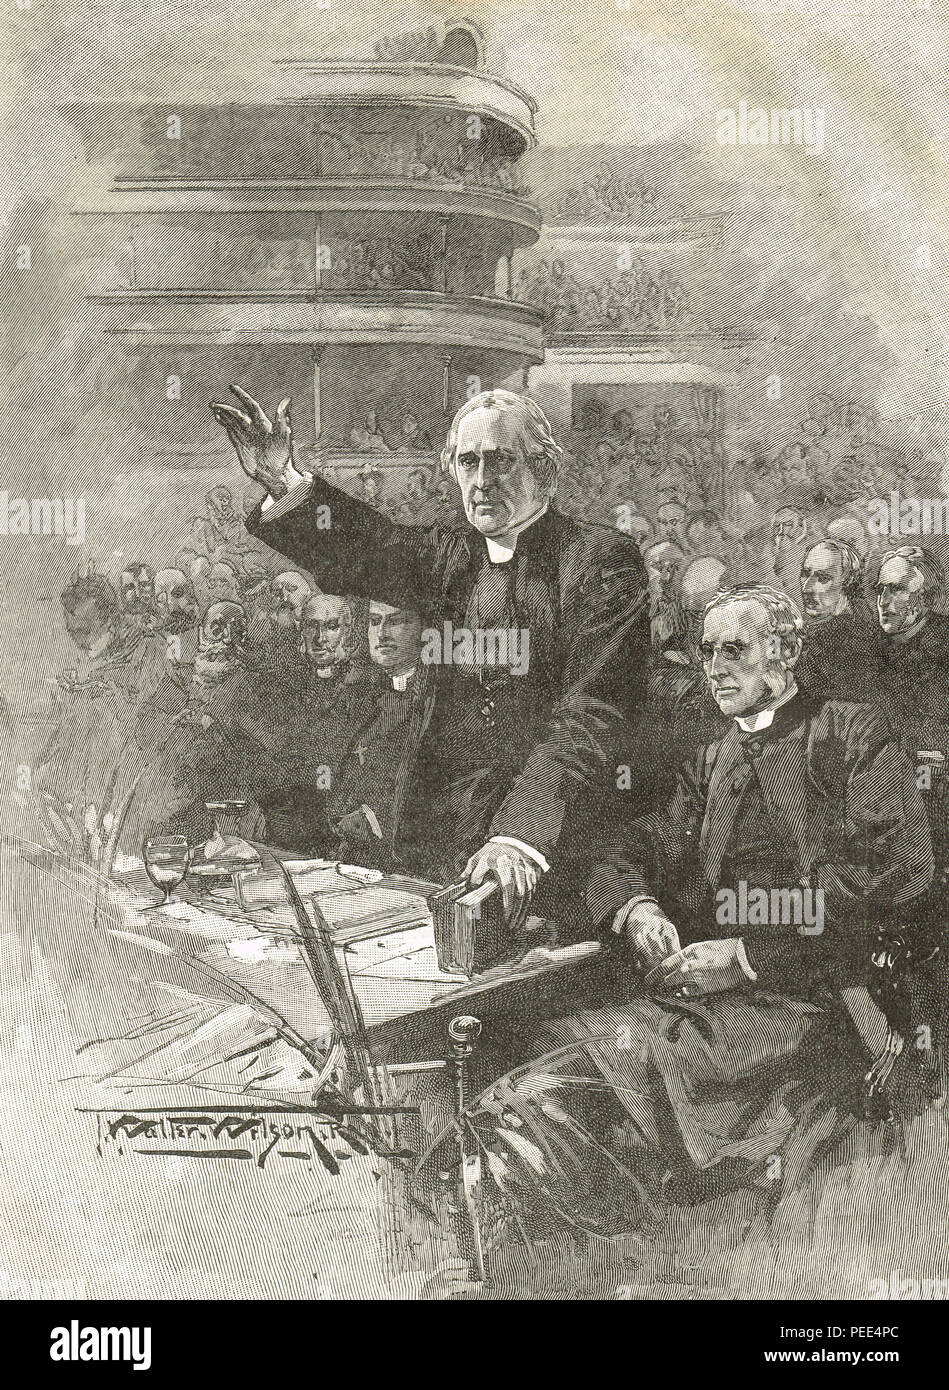 Archbishop of Canterbury, Edward White Benson, demonstration at the Royal Albert Hall, 16 May 1893, in opposition to the Welsh Suspensory Bill - Stock Image